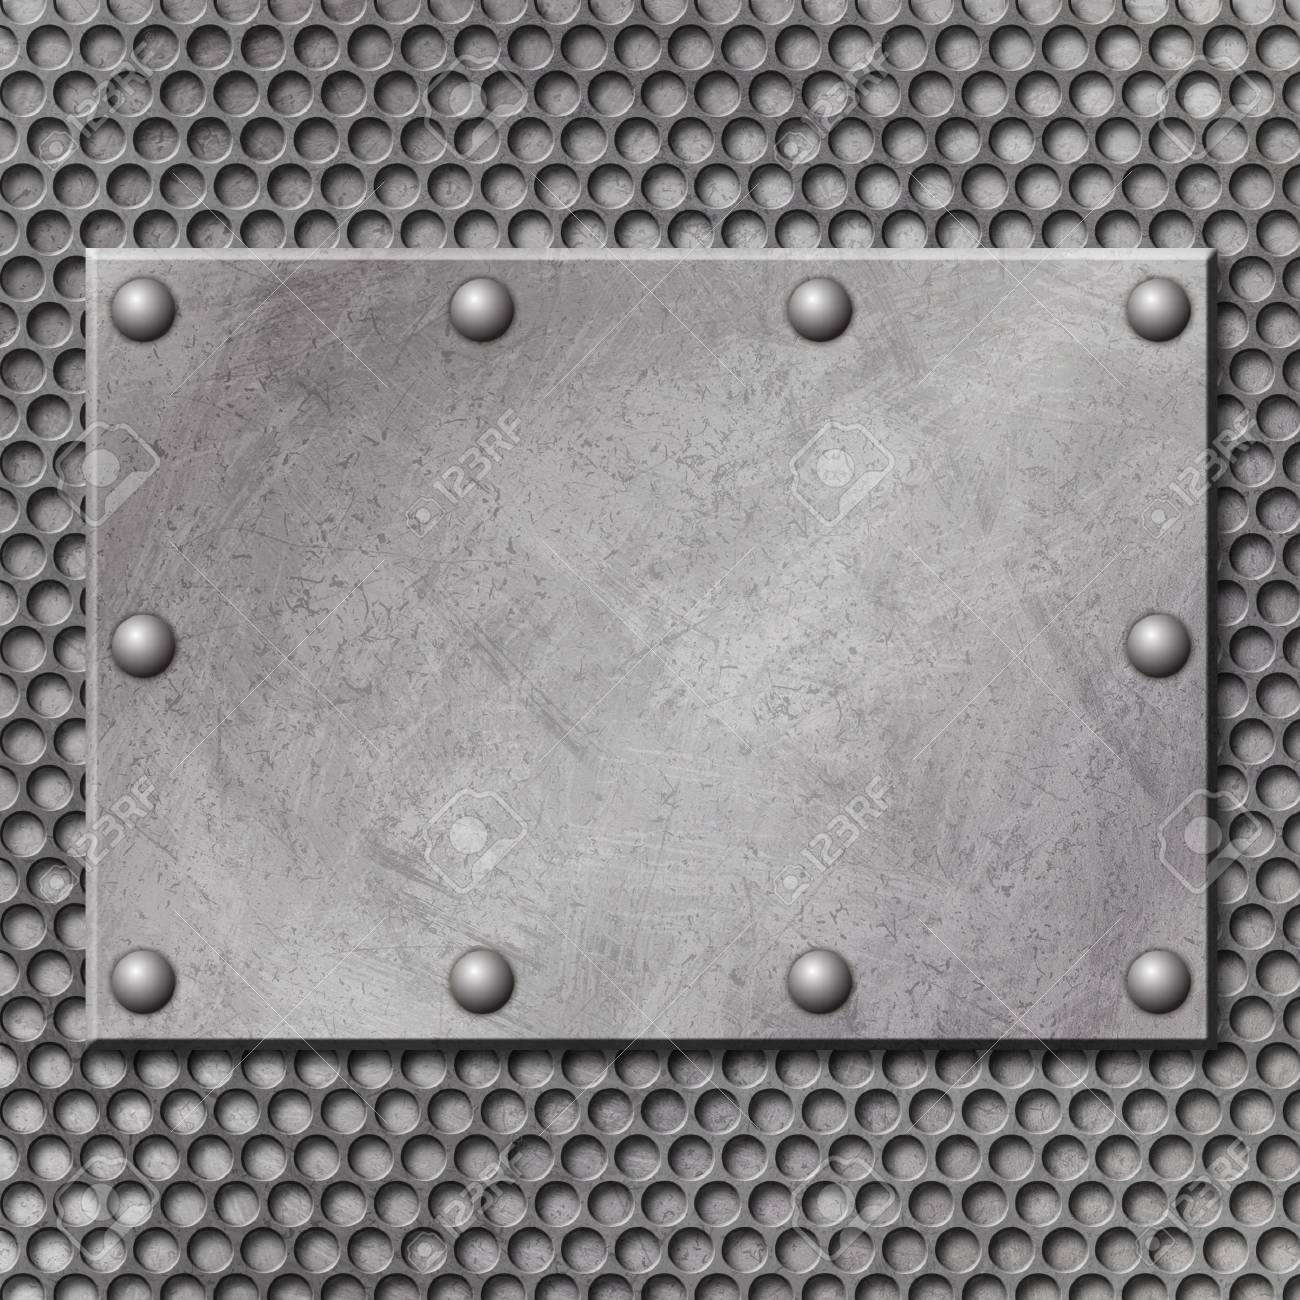 A Grunge Metal Background with Mesh Stock Photo - 5953722